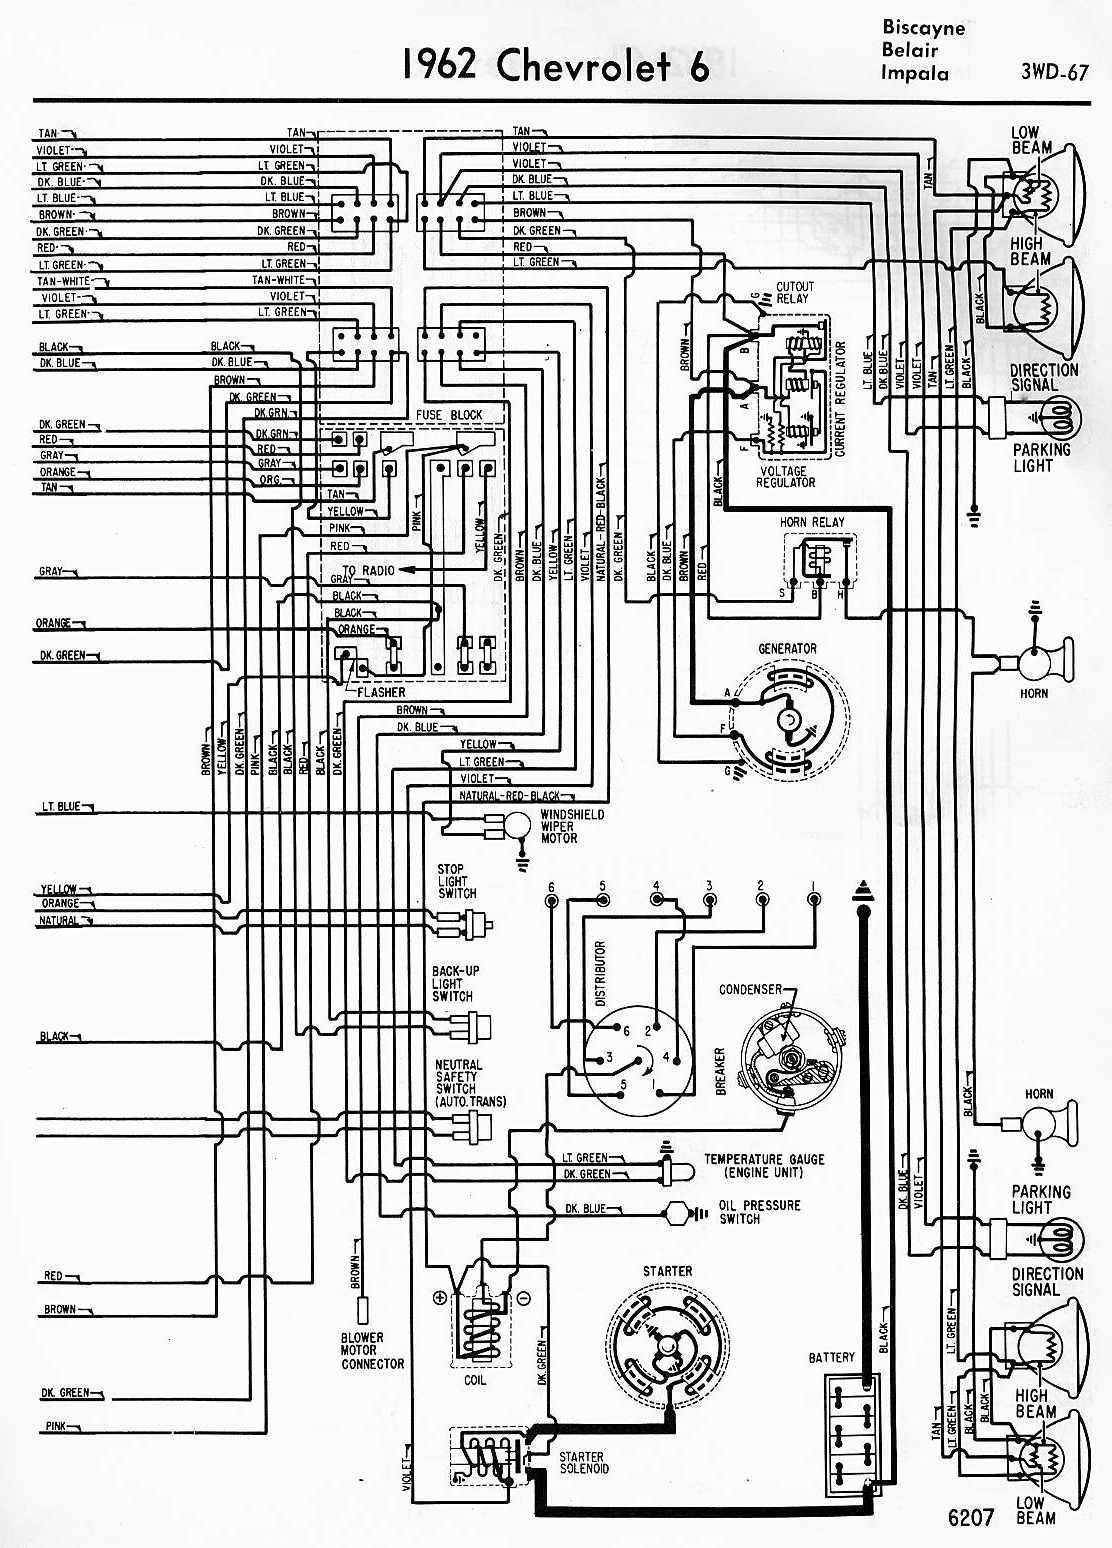 64 gto wiper motor wiring diagram wiring diagram blogs 1966 gto dash wiring diagram 1966 gto wiper motor wiring diagram [ 1112 x 1548 Pixel ]